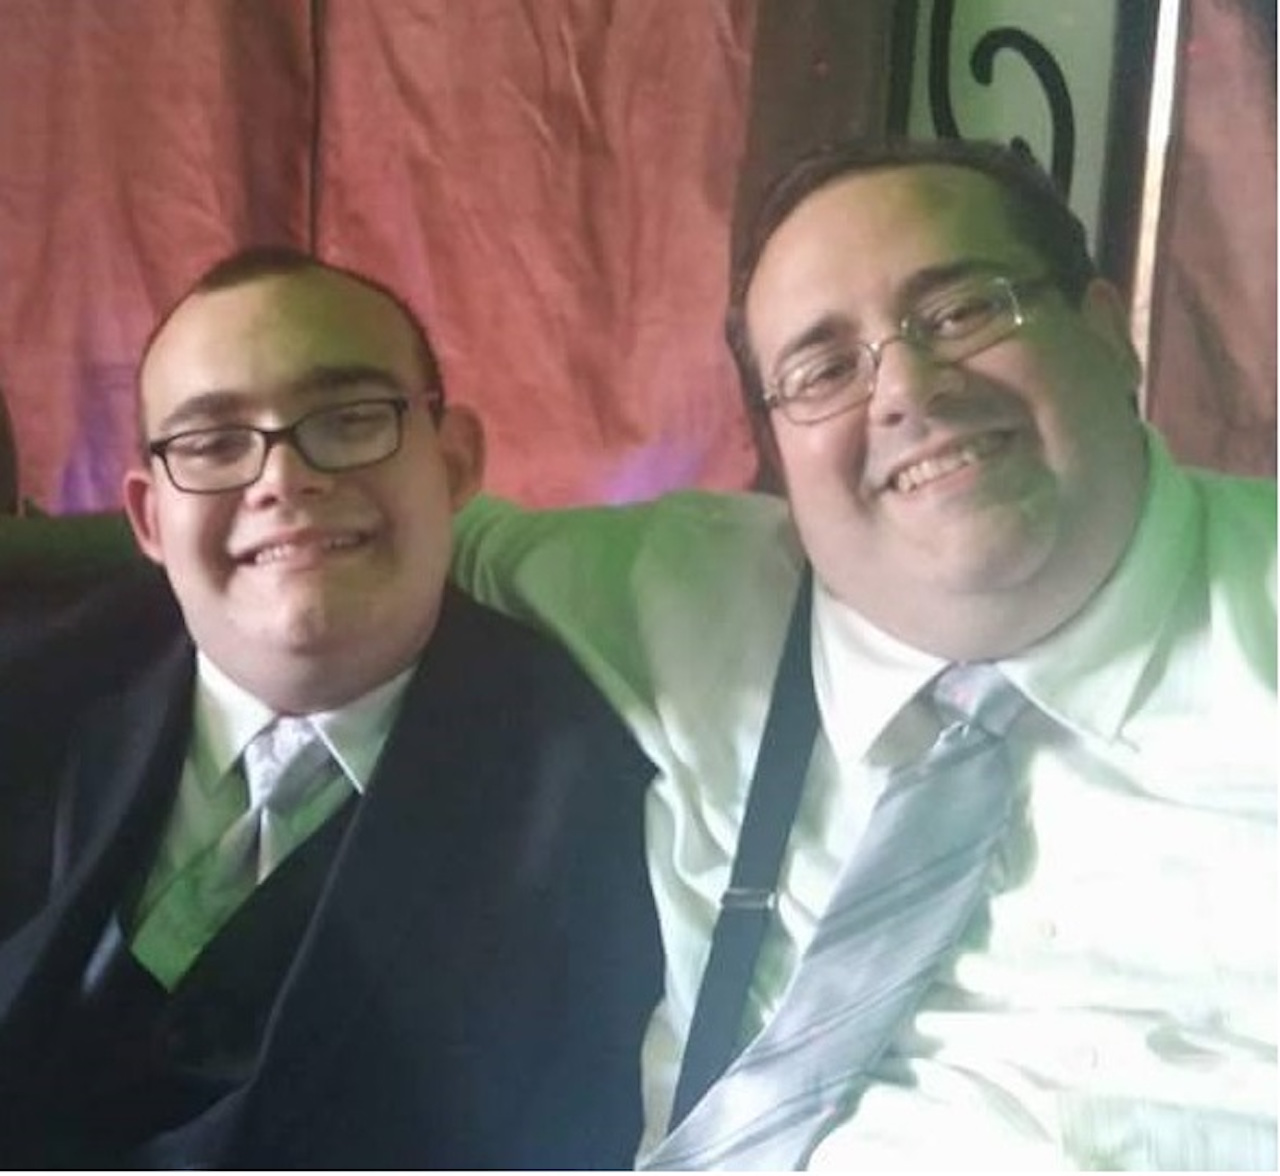 dad and son with autism at the wedding